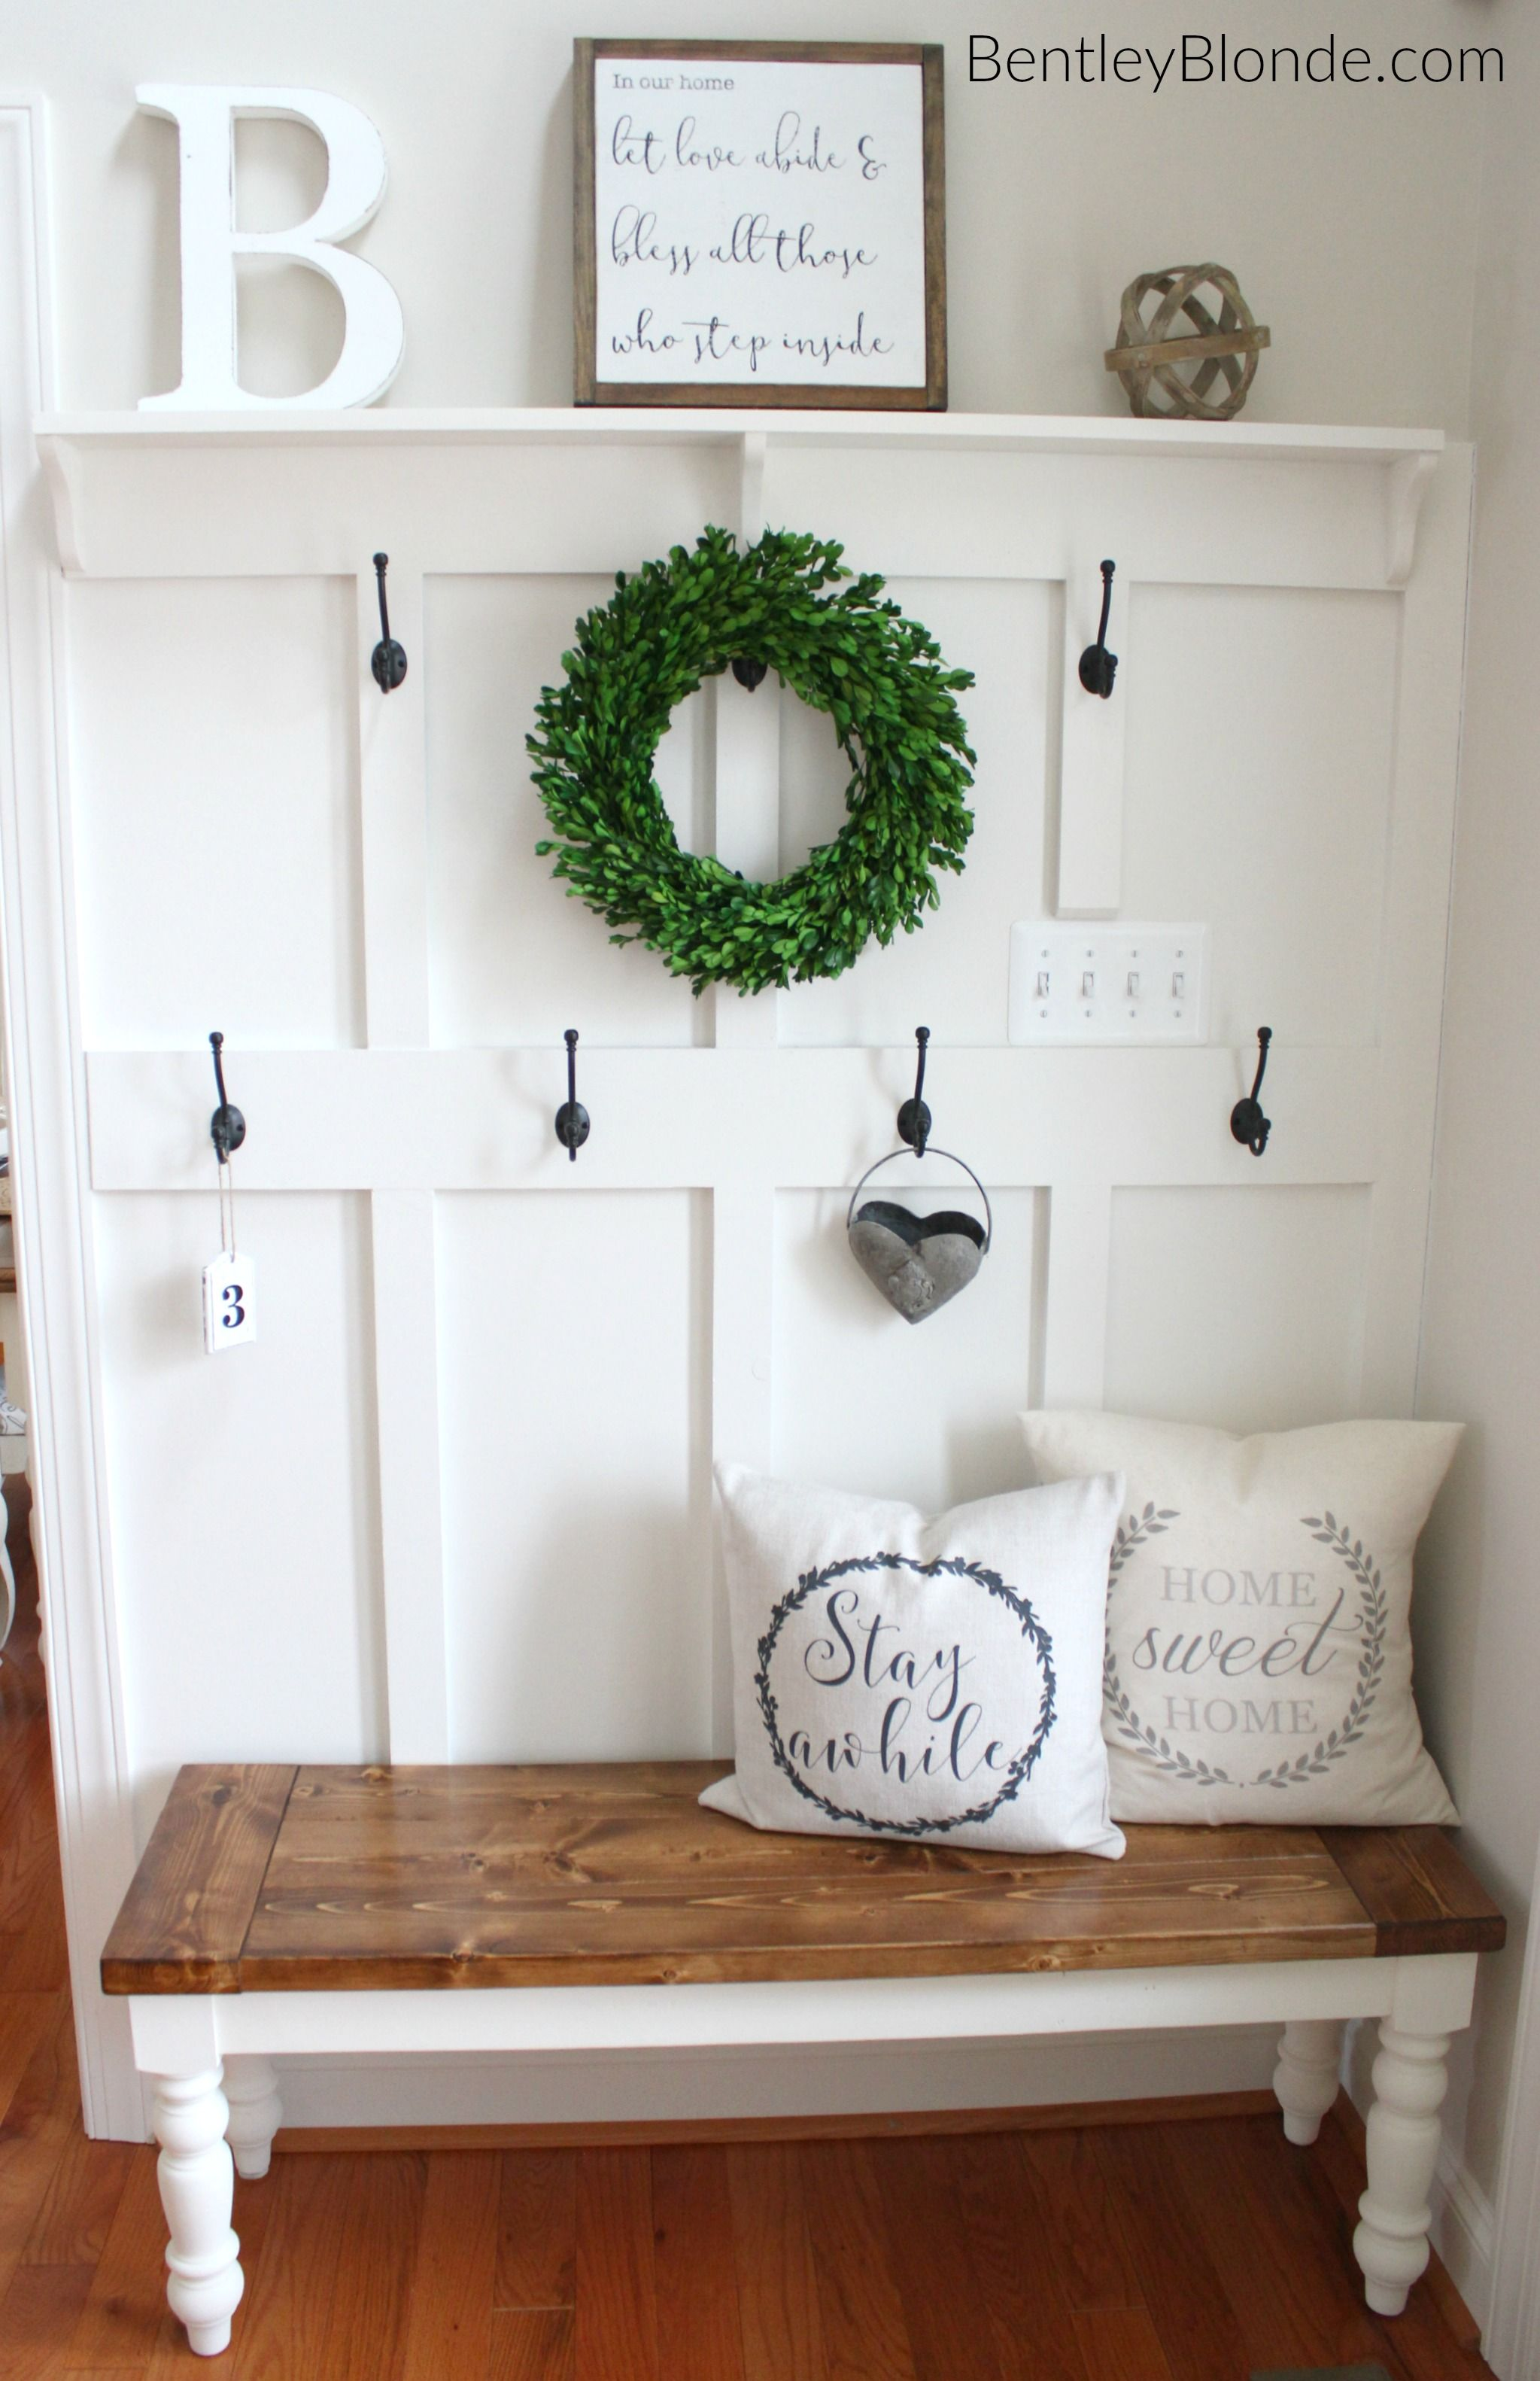 Diy farmhouse bench tutorial small entryway bench kitchen entryway ideas entryway coat hooks